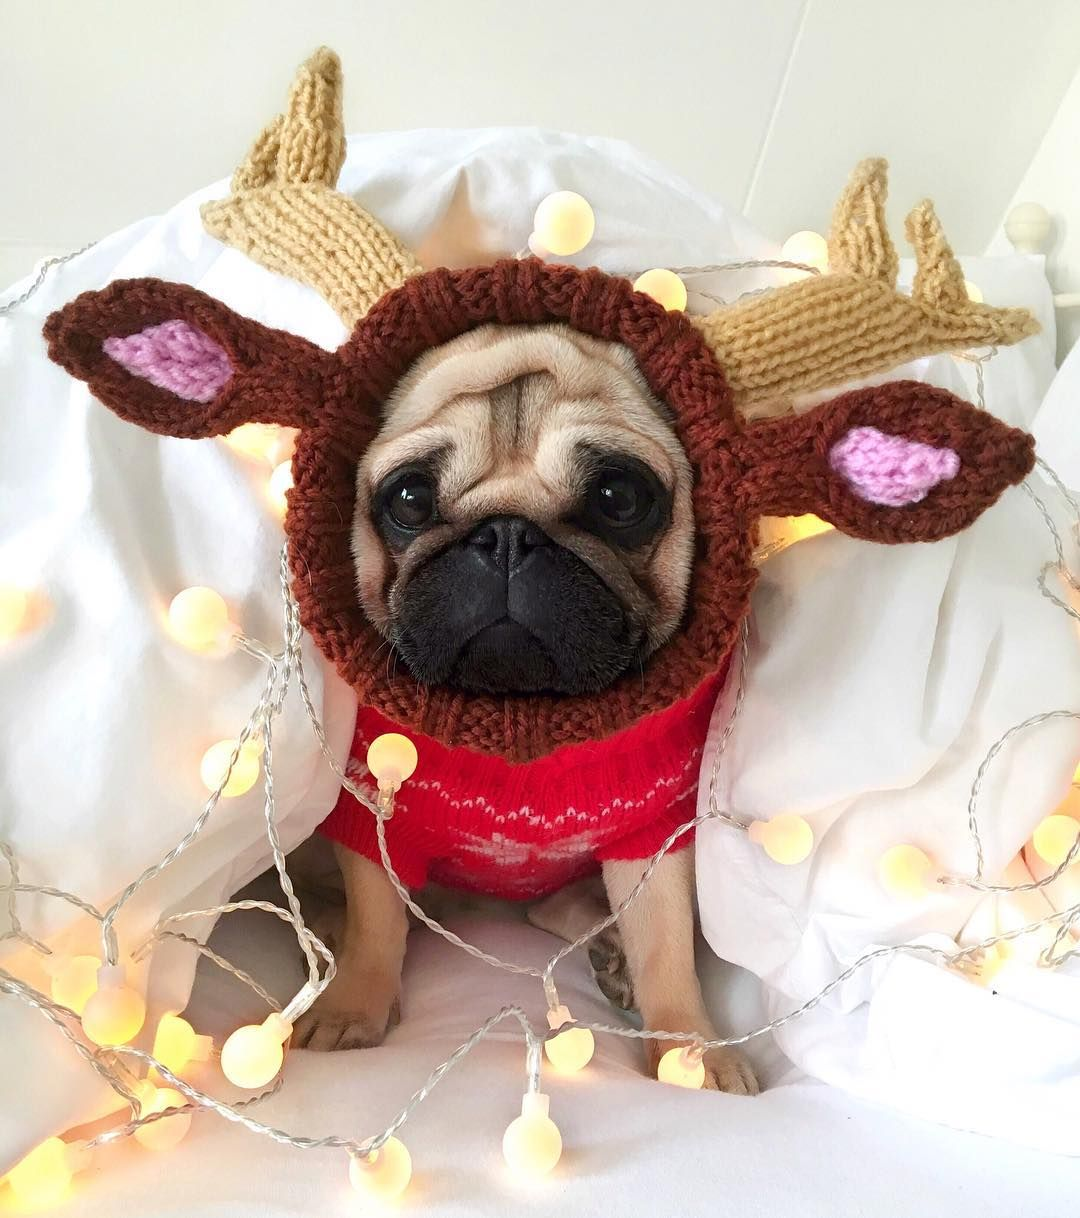 1 915 Likes 30 Comments Loulou The Pug Pugloulou On Instagram Wishing You All A Very Merry Christmas Loulou Cute Pugs Baby Pugs Cute Pug Puppies